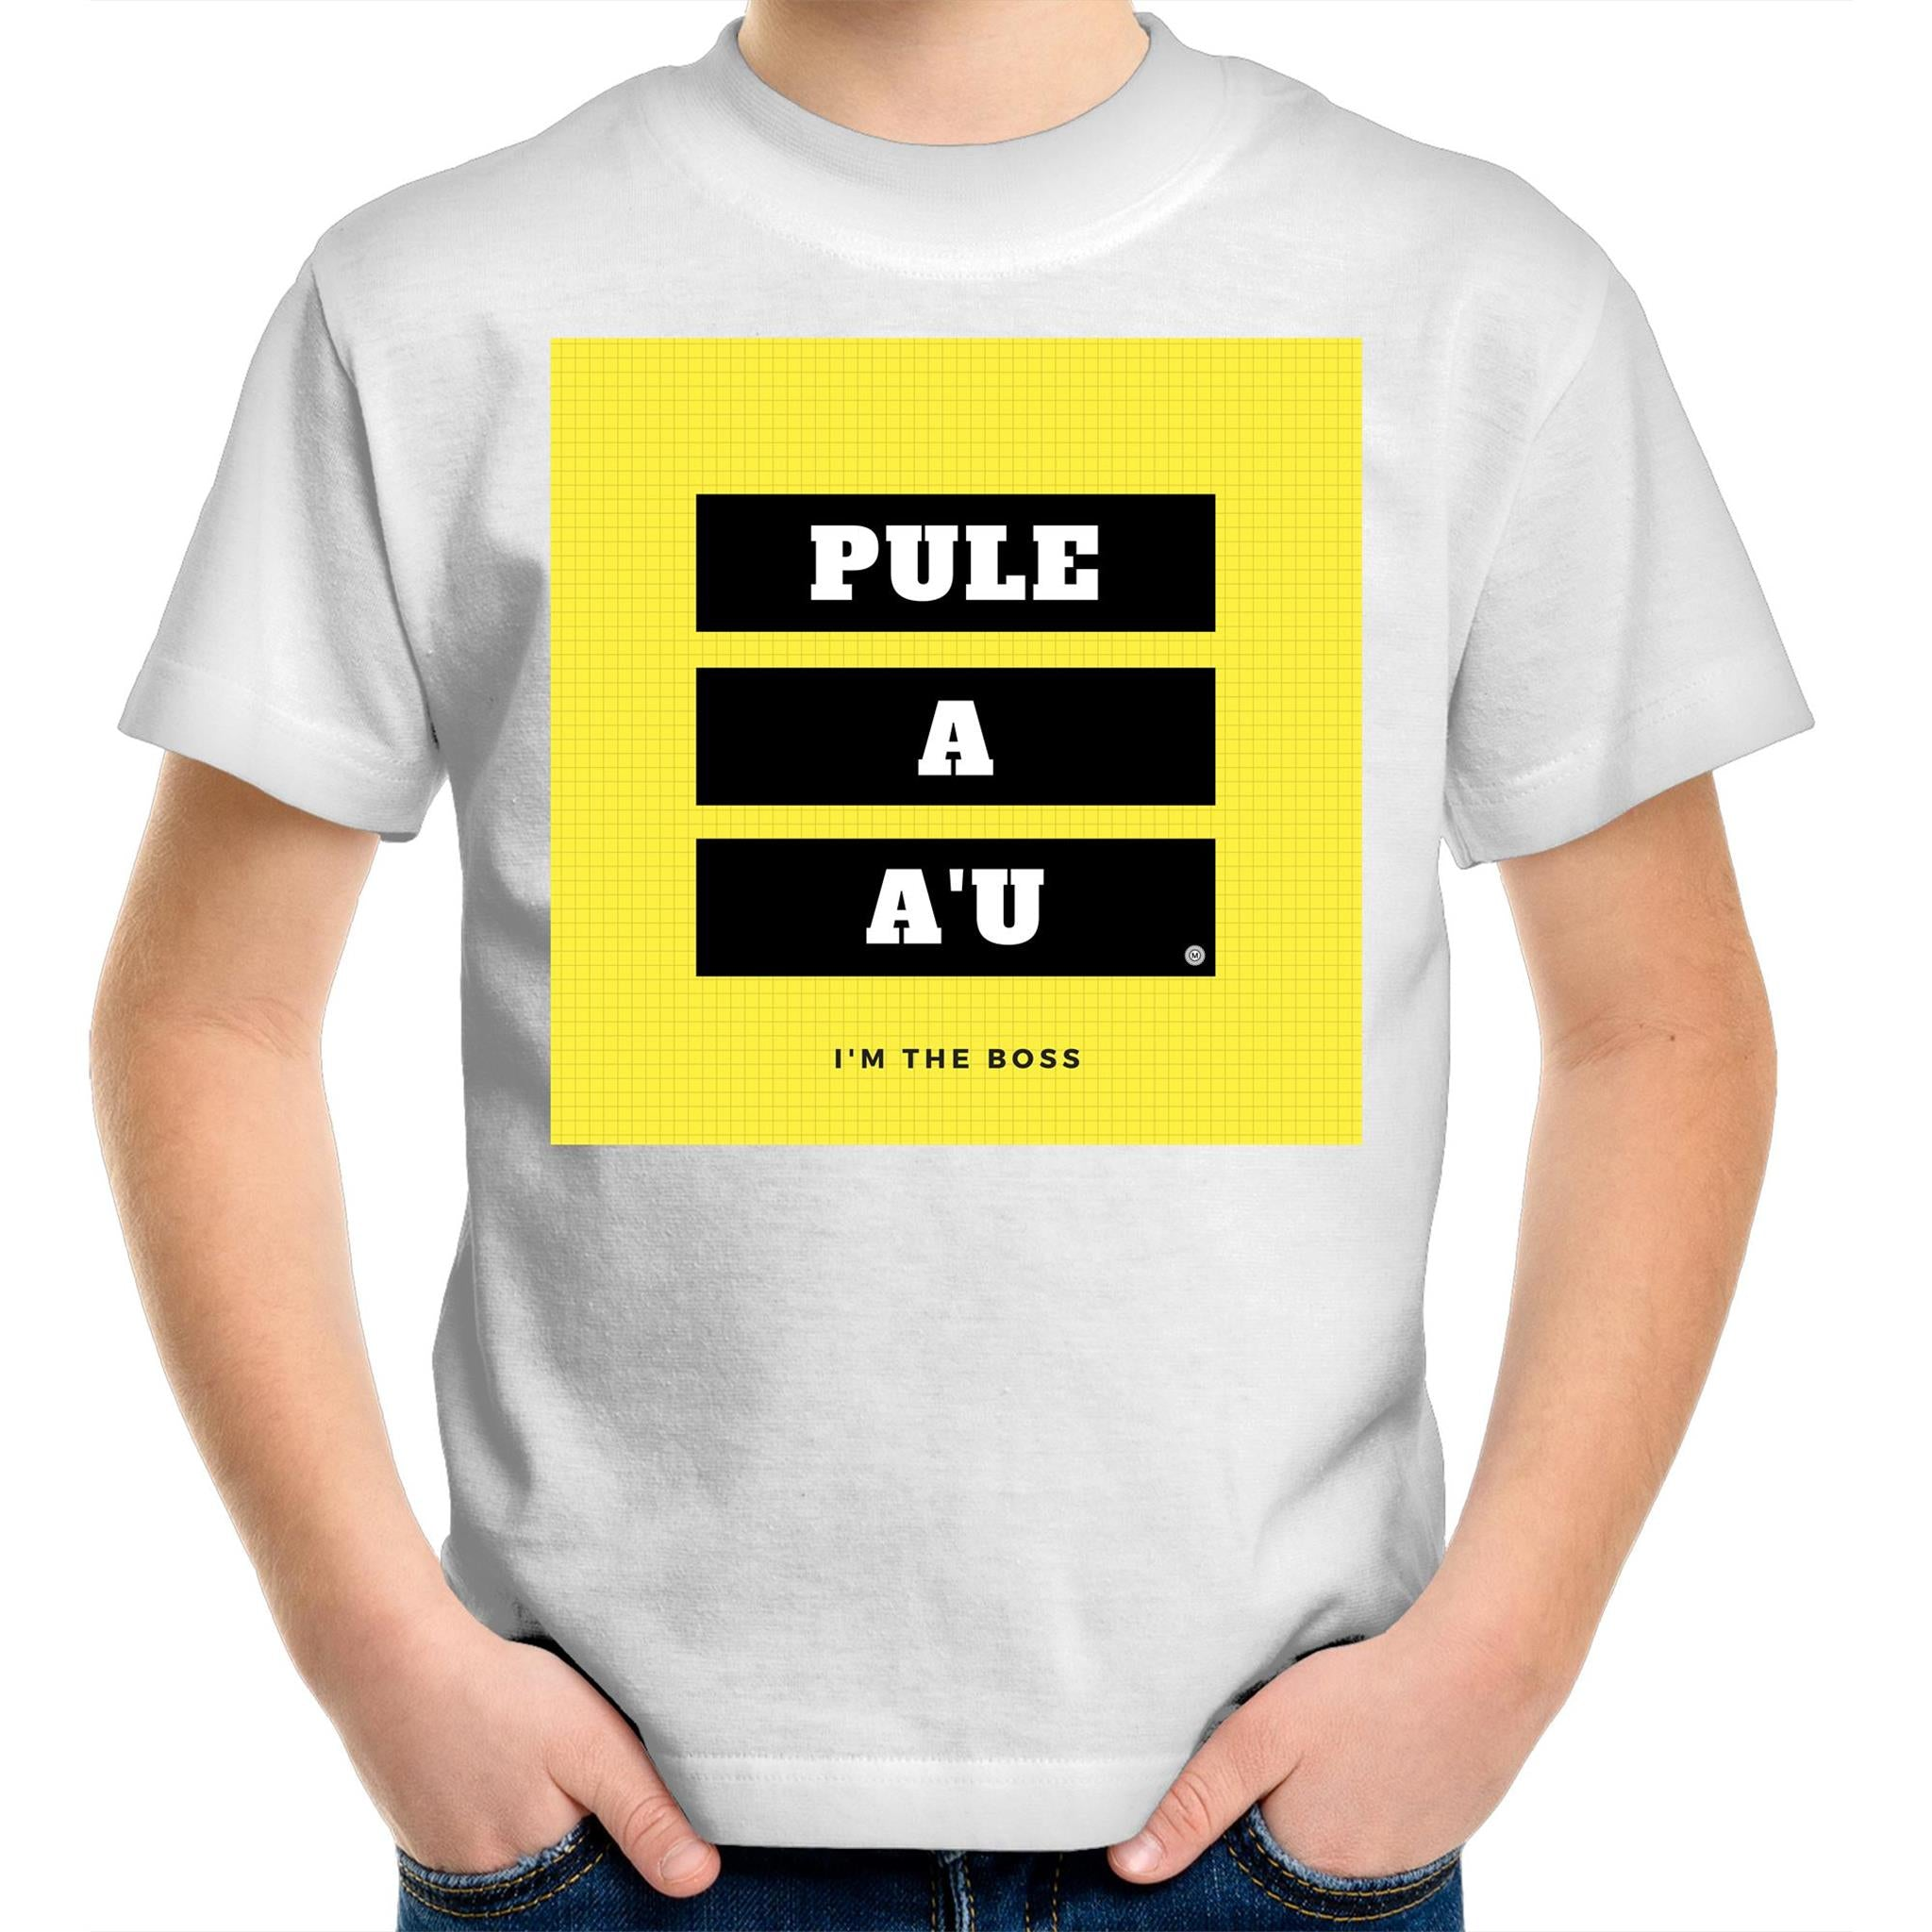 Pule A A'u - I Am the Boss Kids Youth Crew T-Shirt - Measina Treasures of Samoa